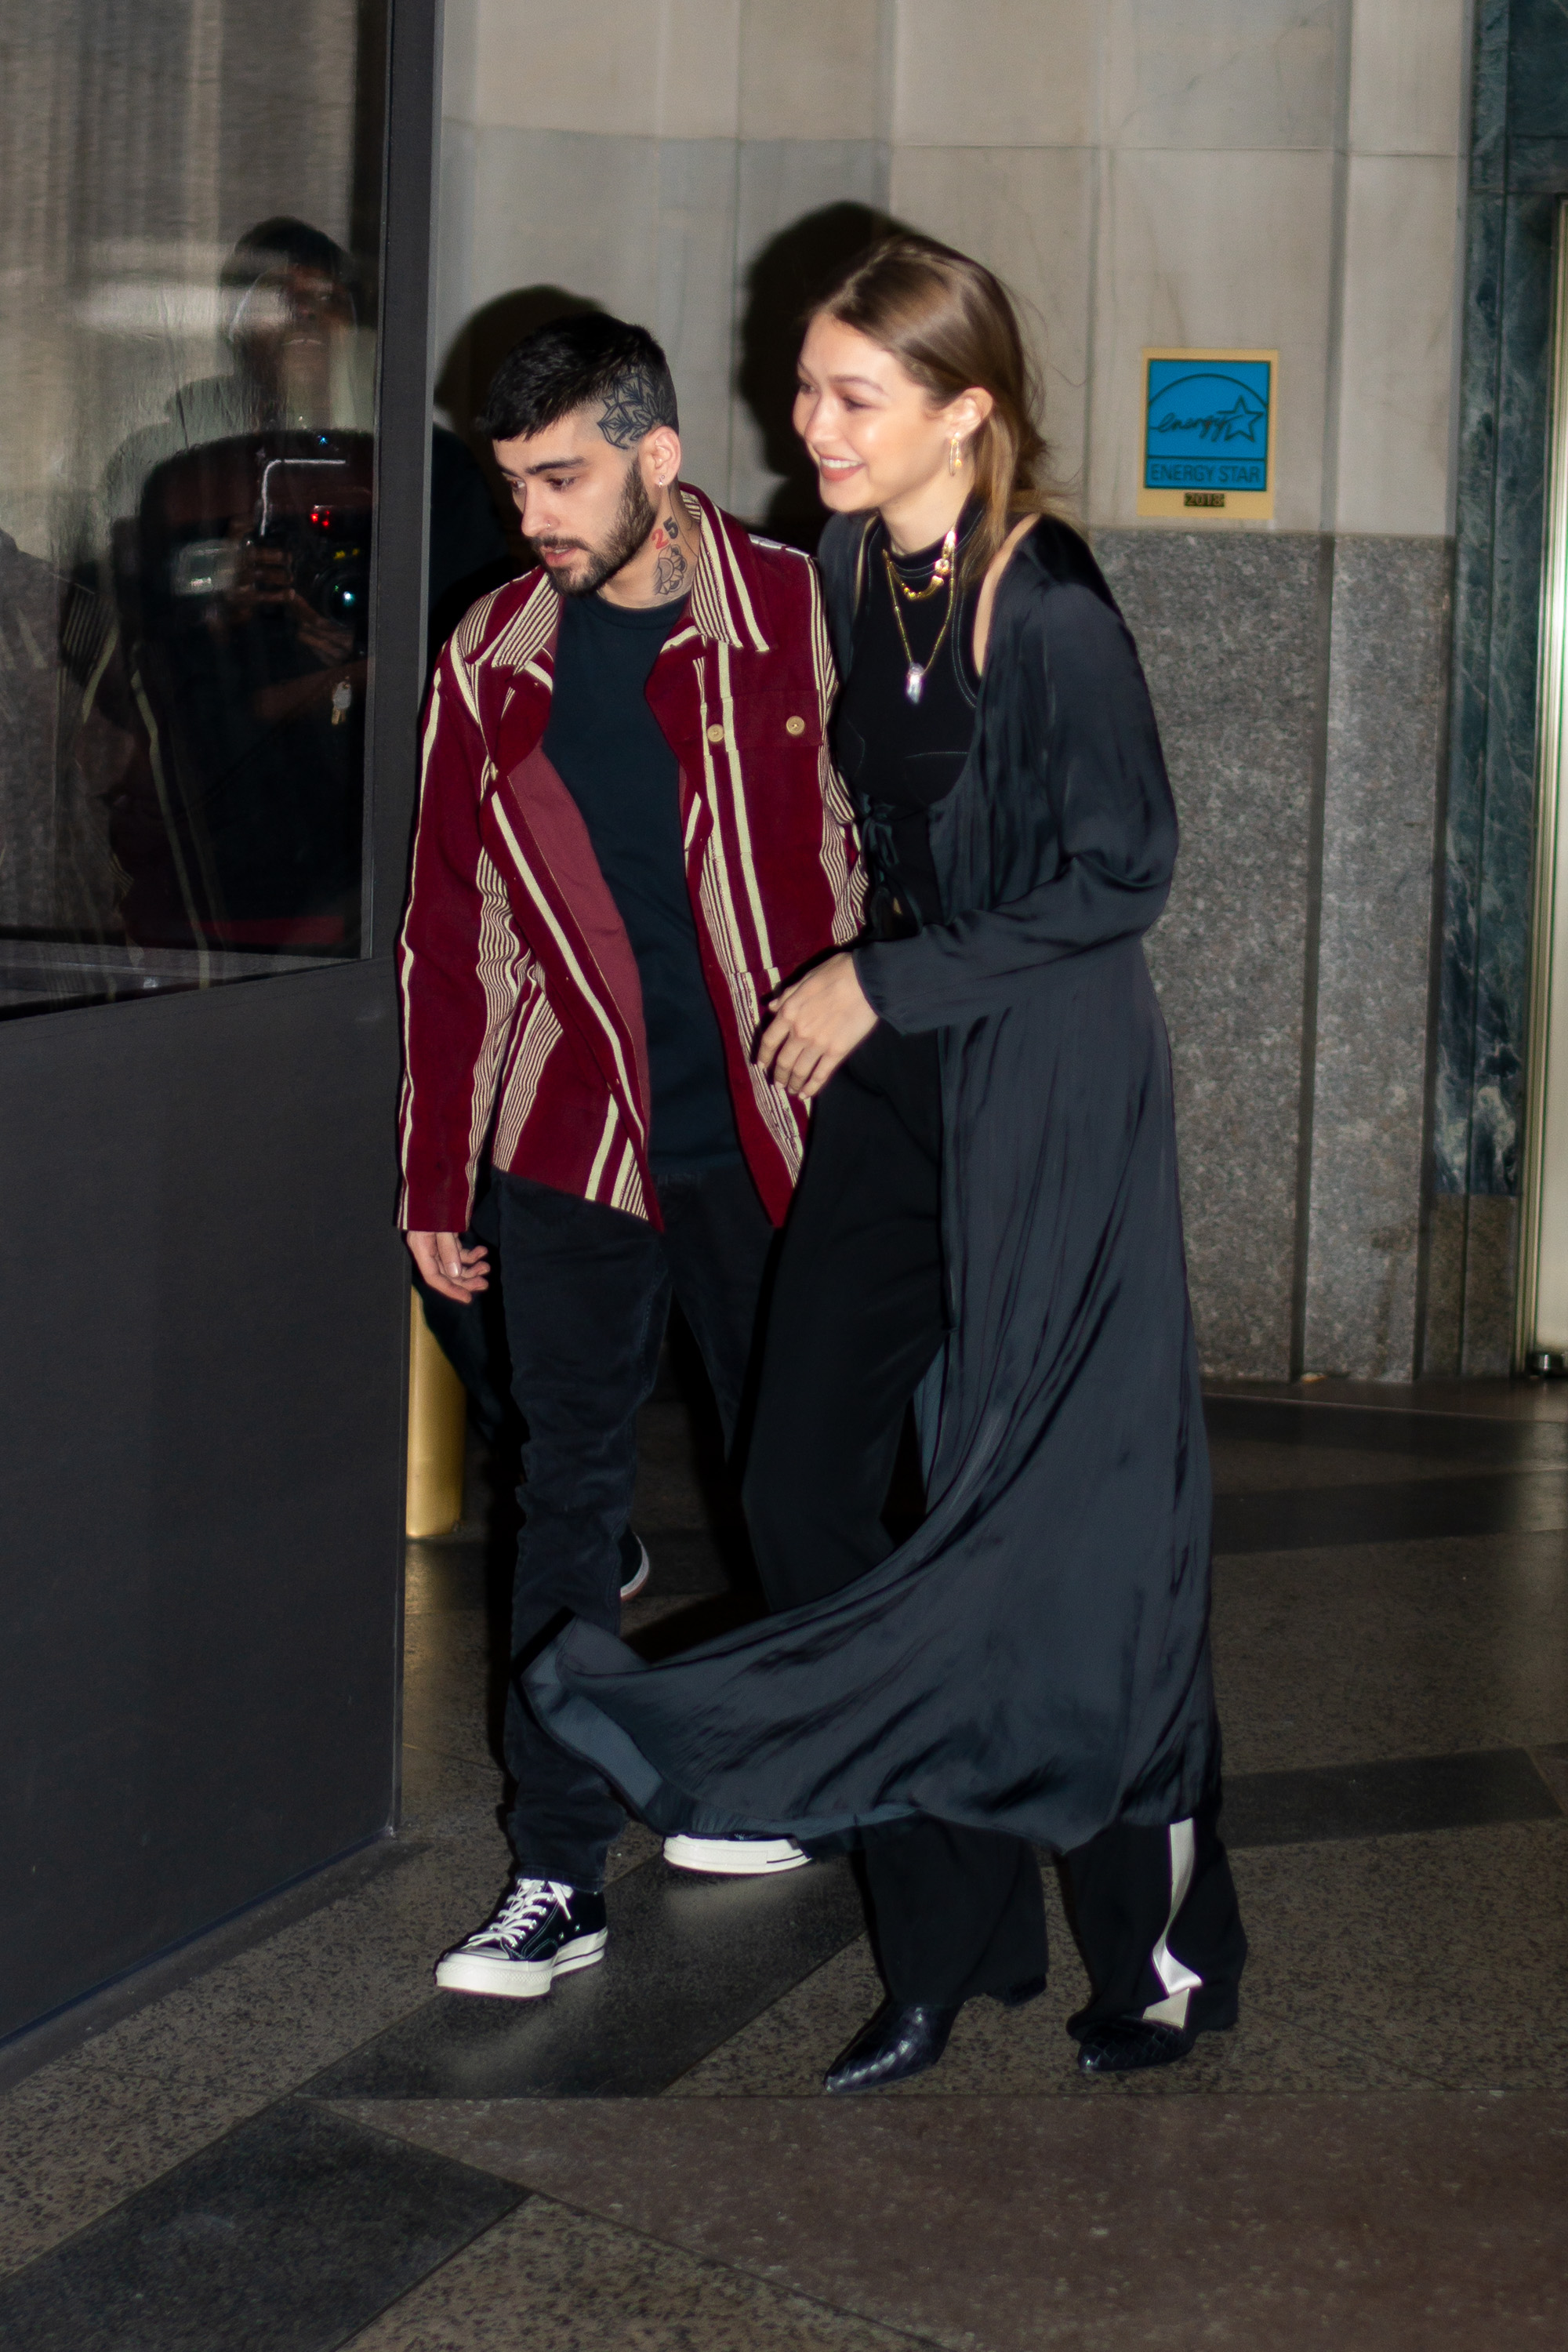 PHOTOS: Zayn Malik and Gigi Hadid can't keep their hands off each other as they enjoy date night in NYC